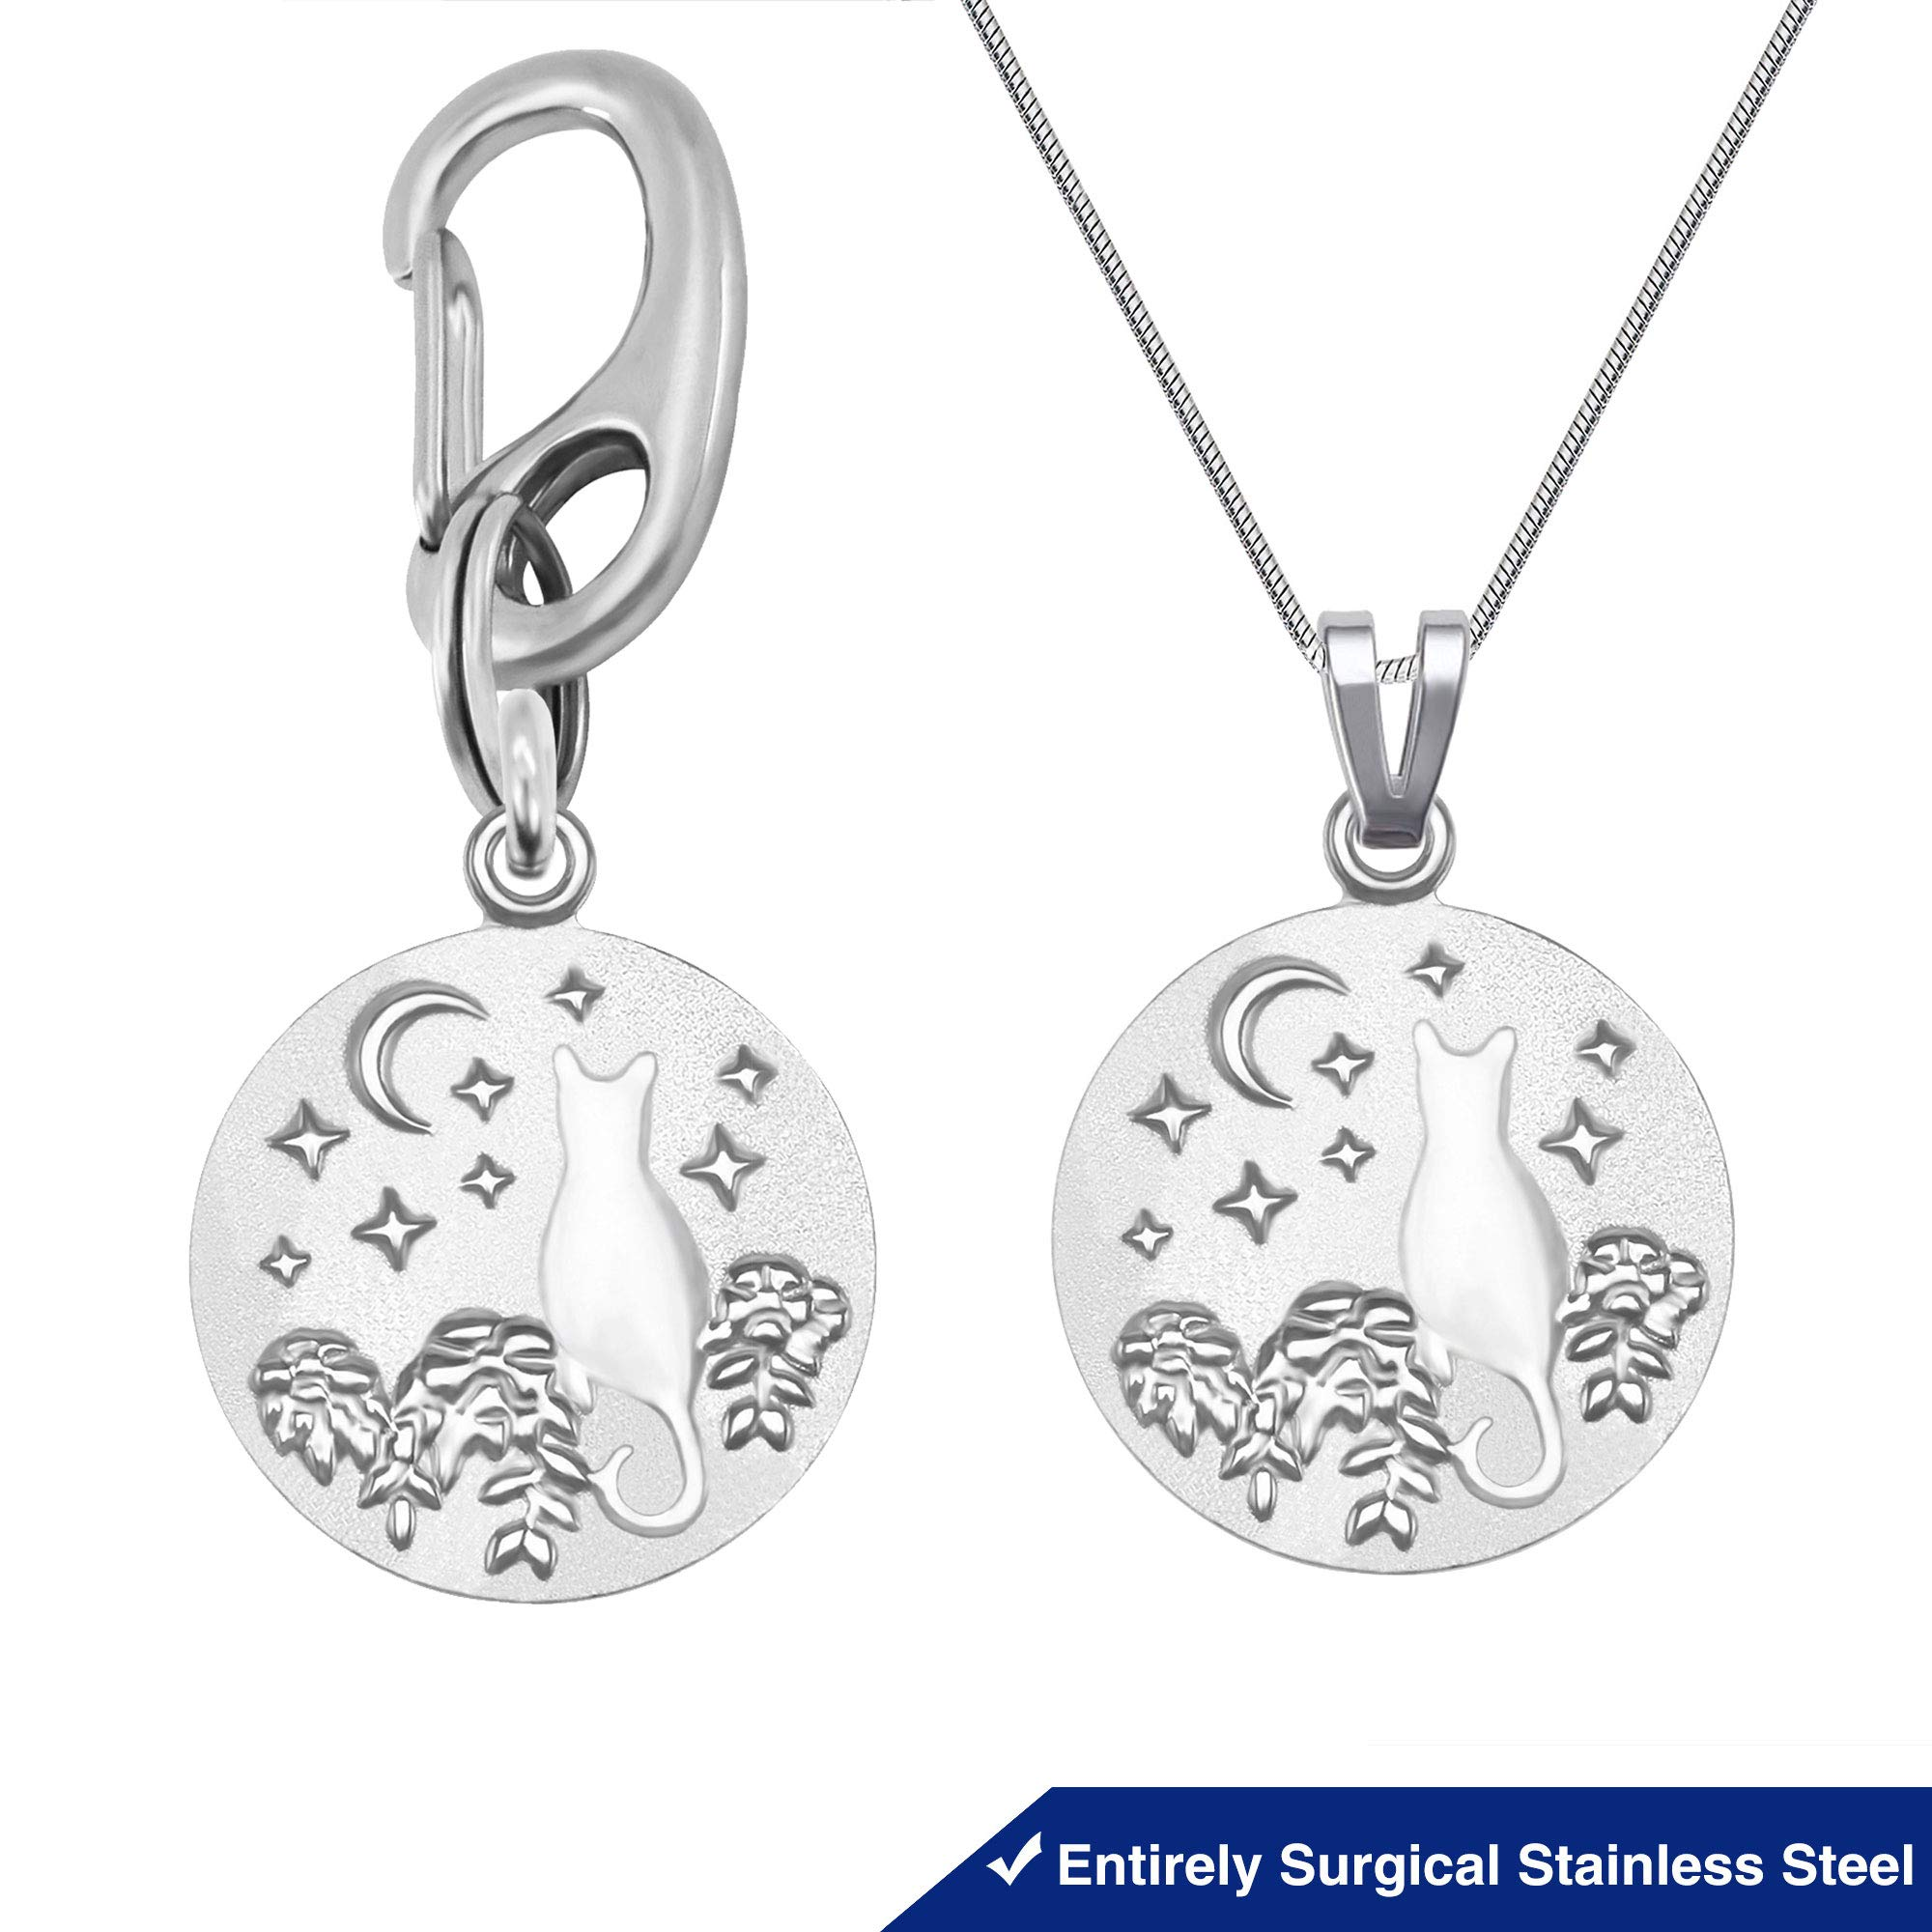 Divoti Deep Custom Laser Engraved Stainless Steel Star Moon Cat Tags - Cat ID Tag & Cat Owner's Necklace Combo- up to 4 Lines of 20-Character Text. by Divoti